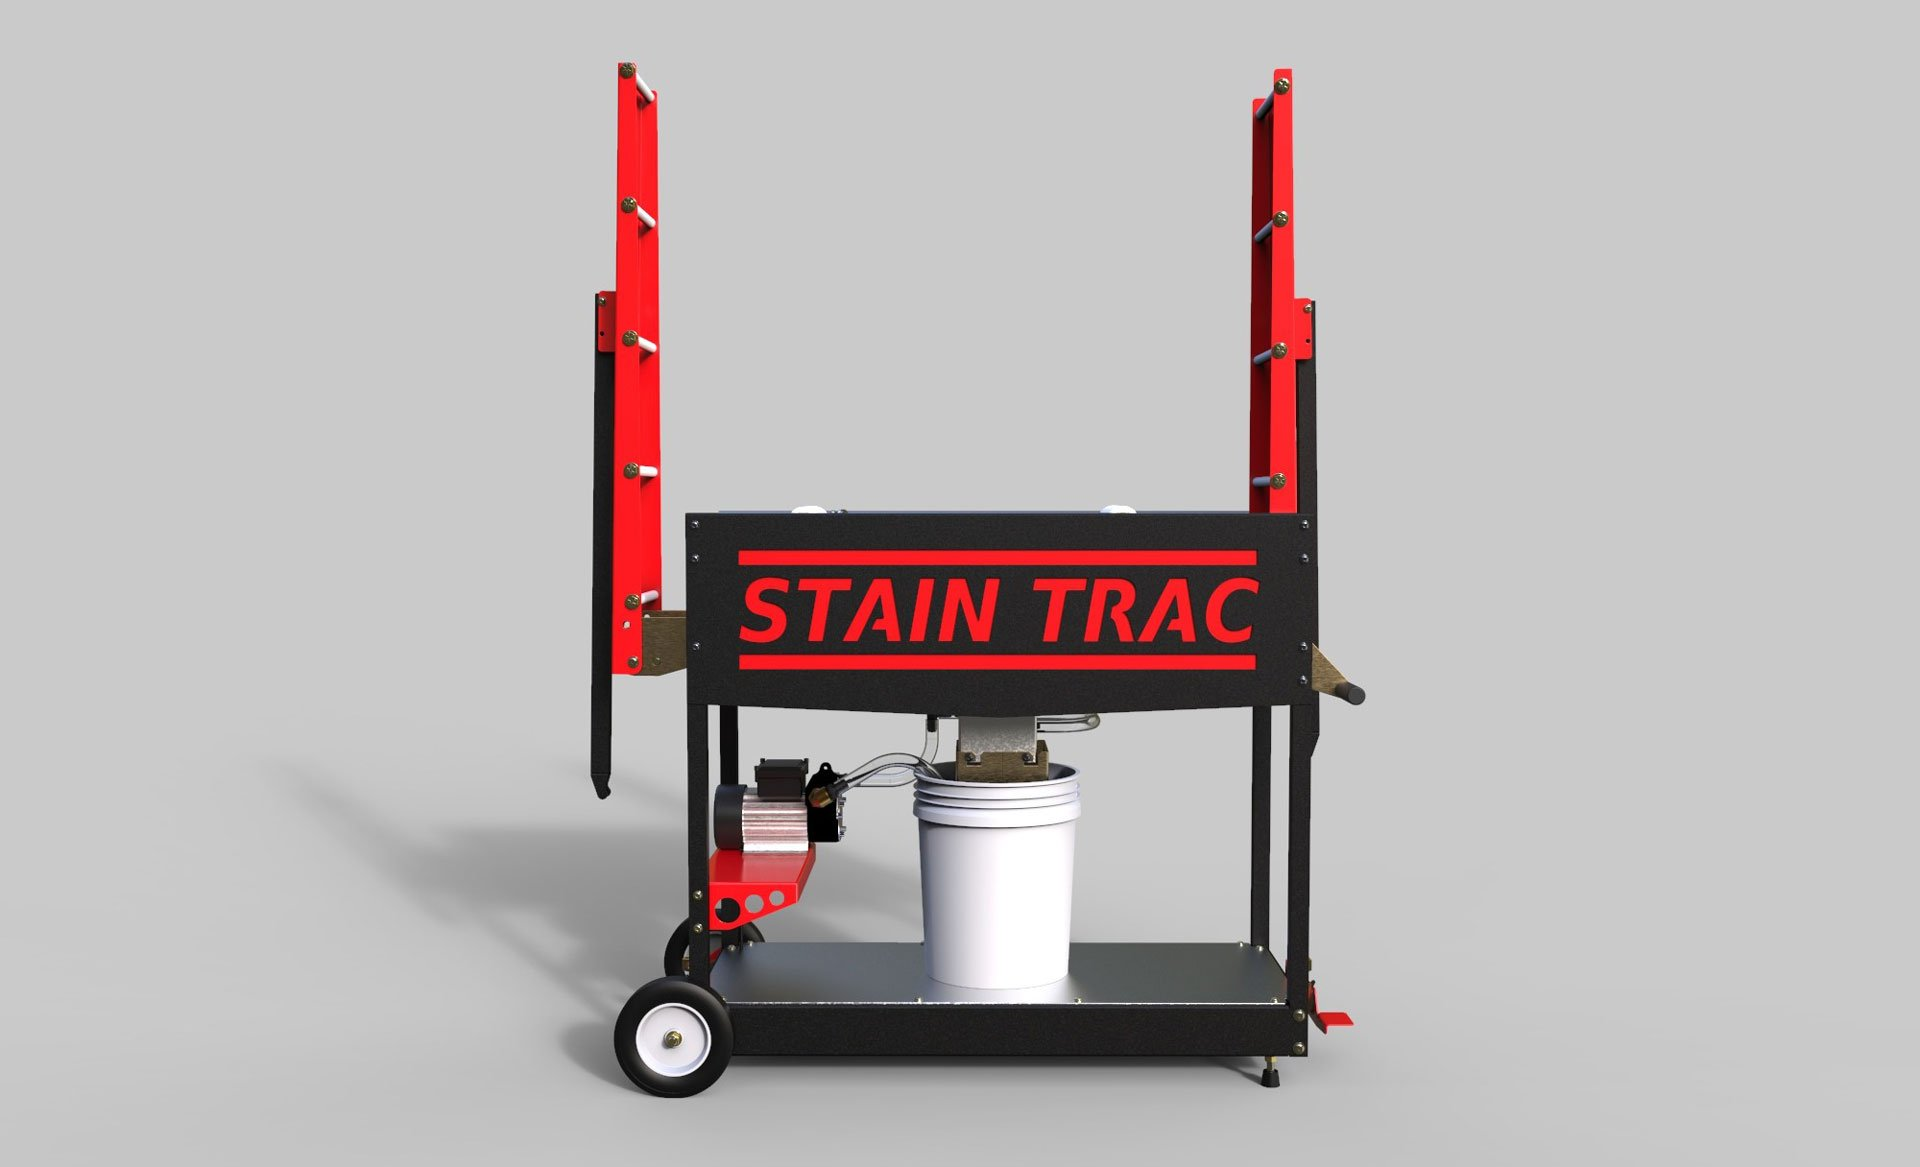 StainTrac Fence Staining System